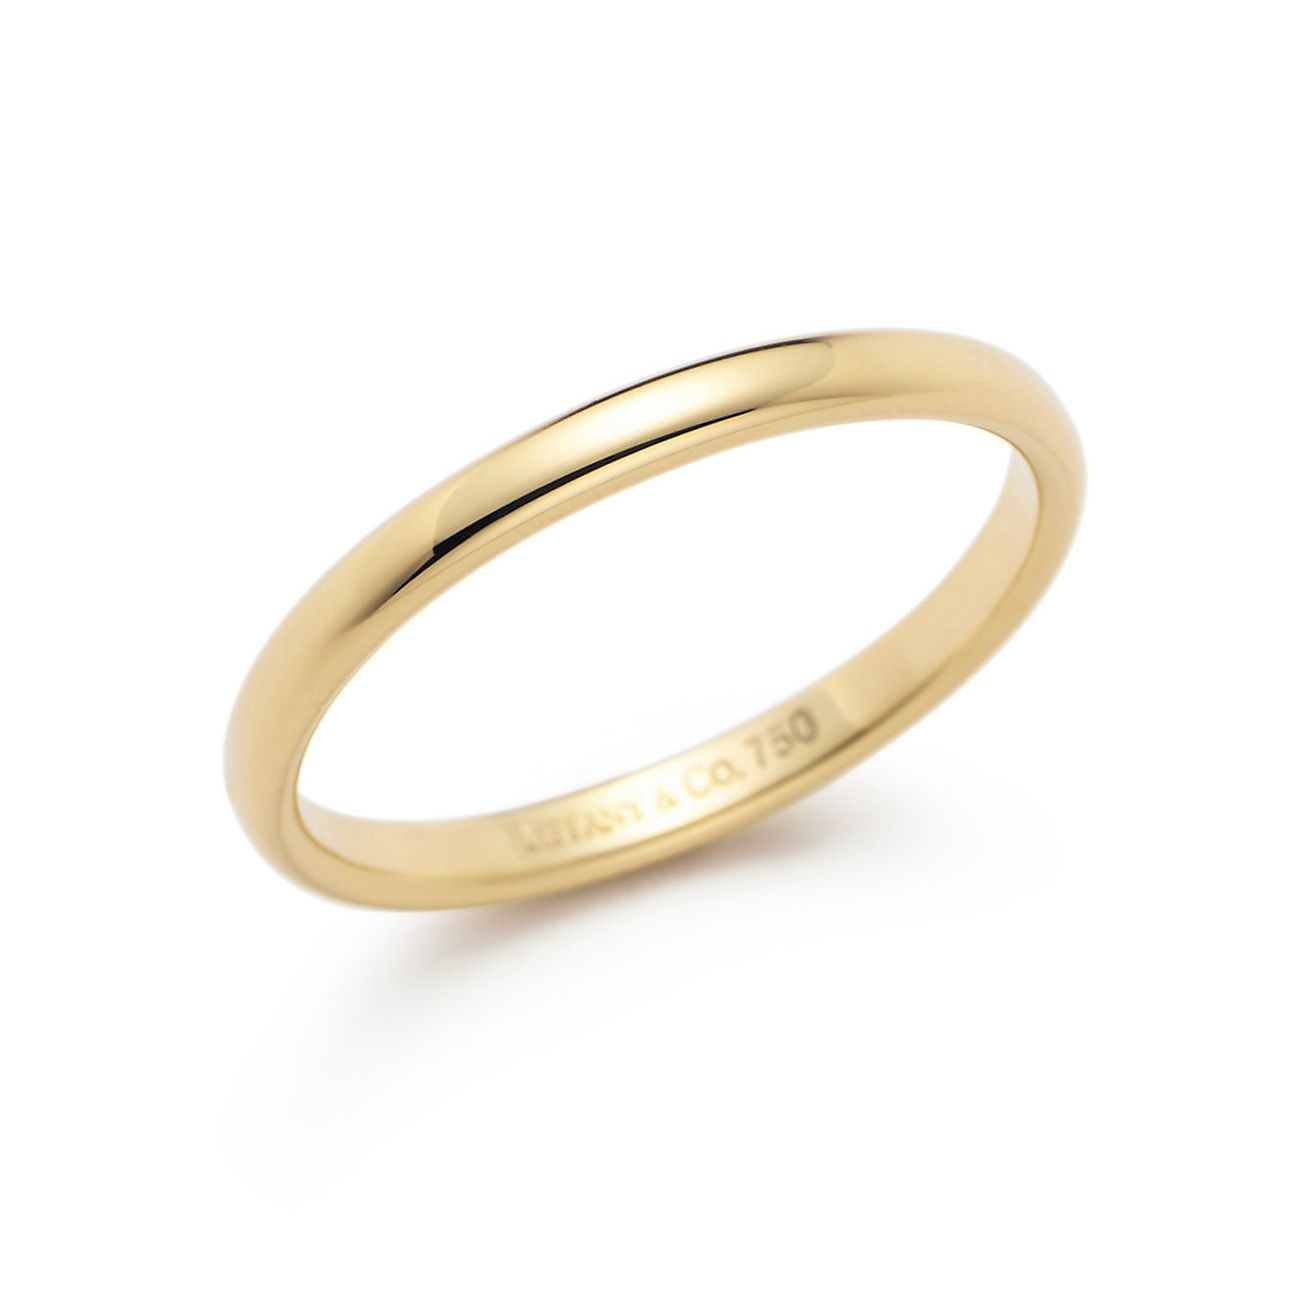 lucida 174 wedding band ring in 18k gold 2mm wide